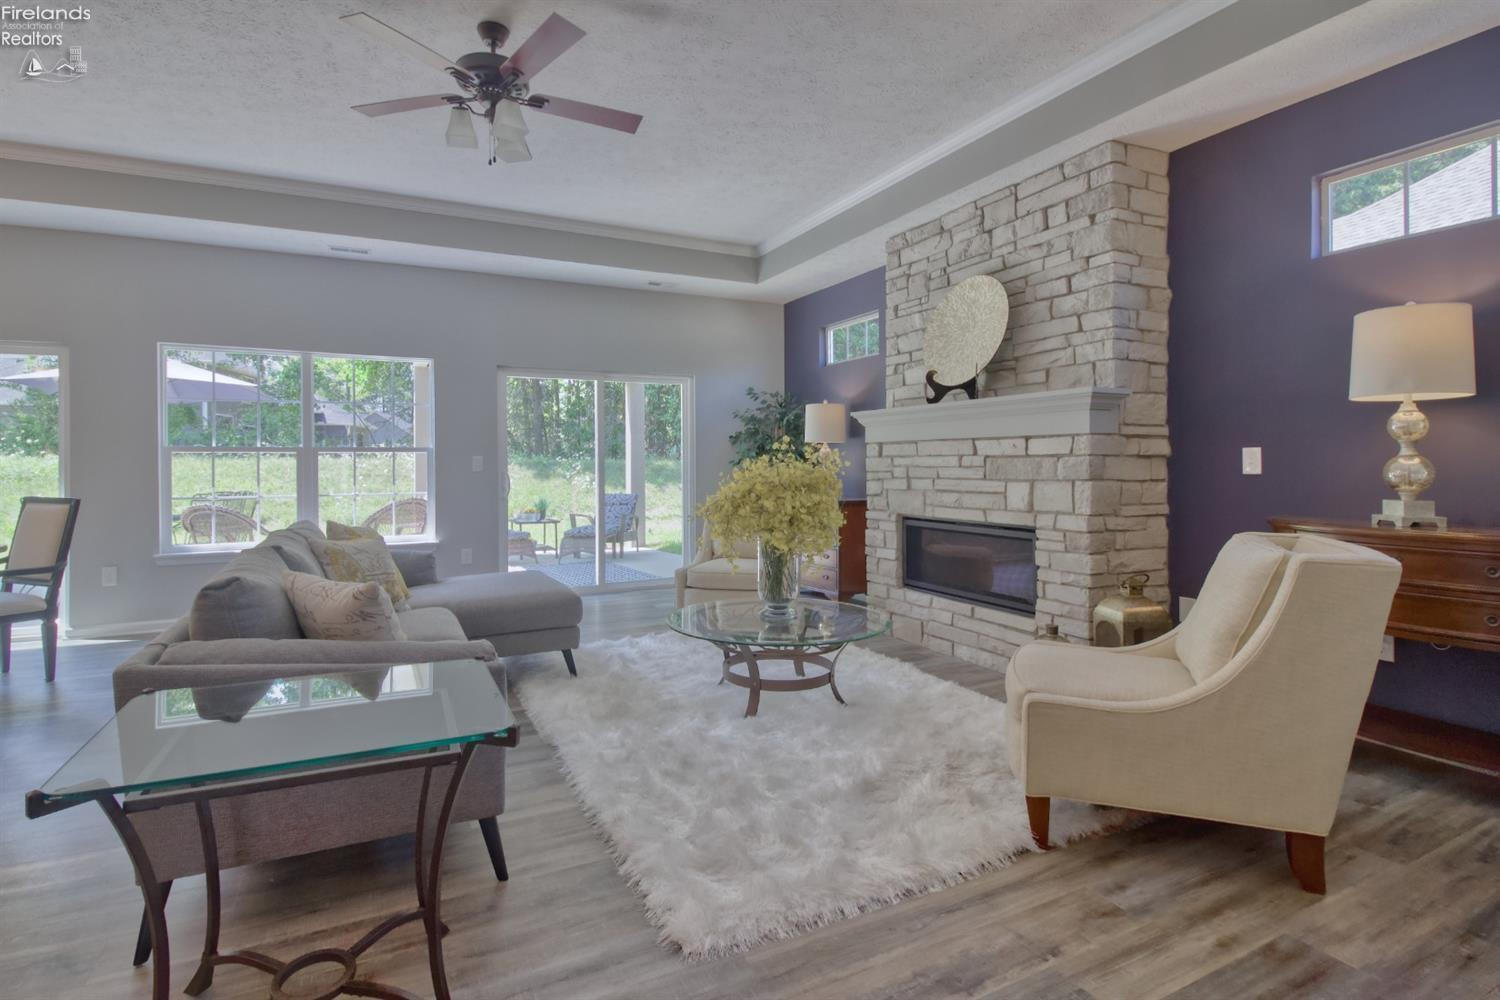 Living Area featured in The Kimberly By Marblewood Homes in Sandusky, OH